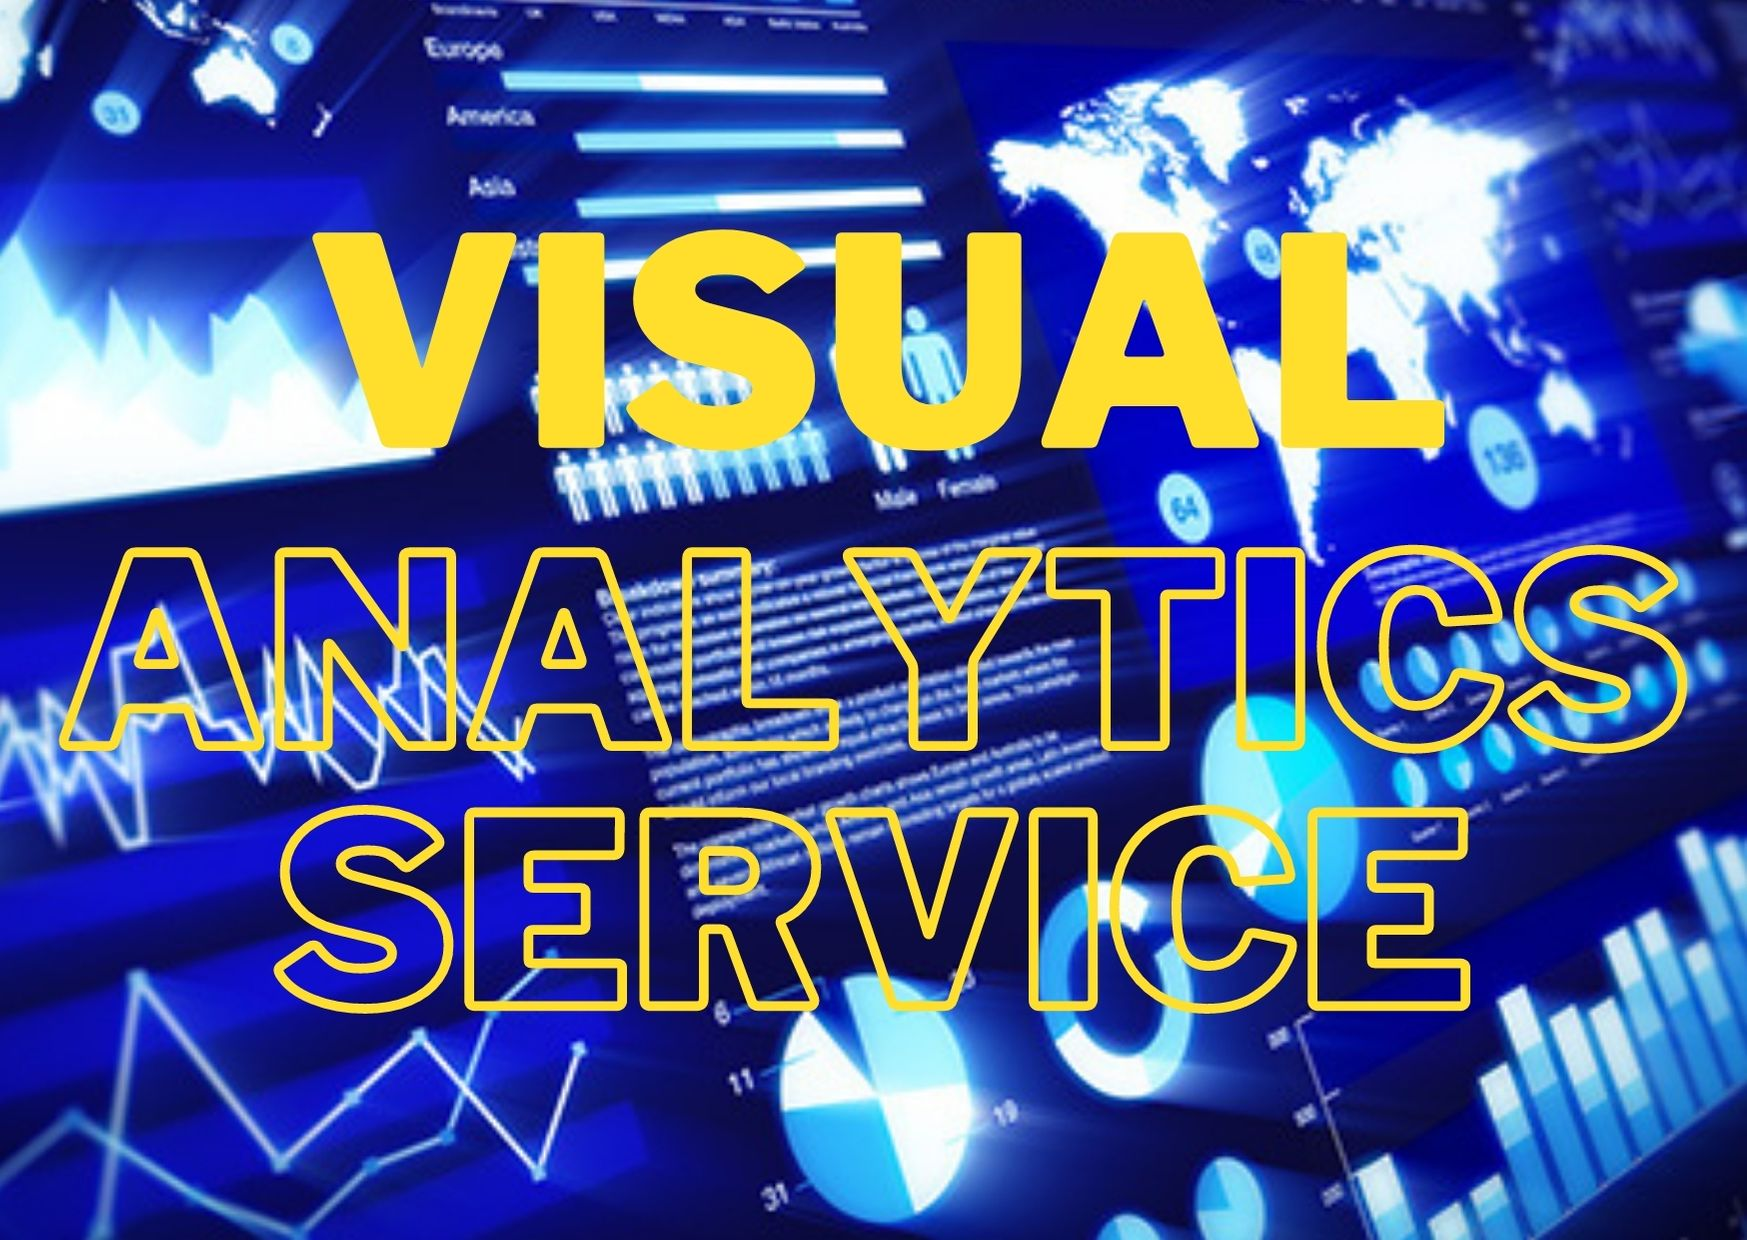 Visual Analytics Service.jpg 